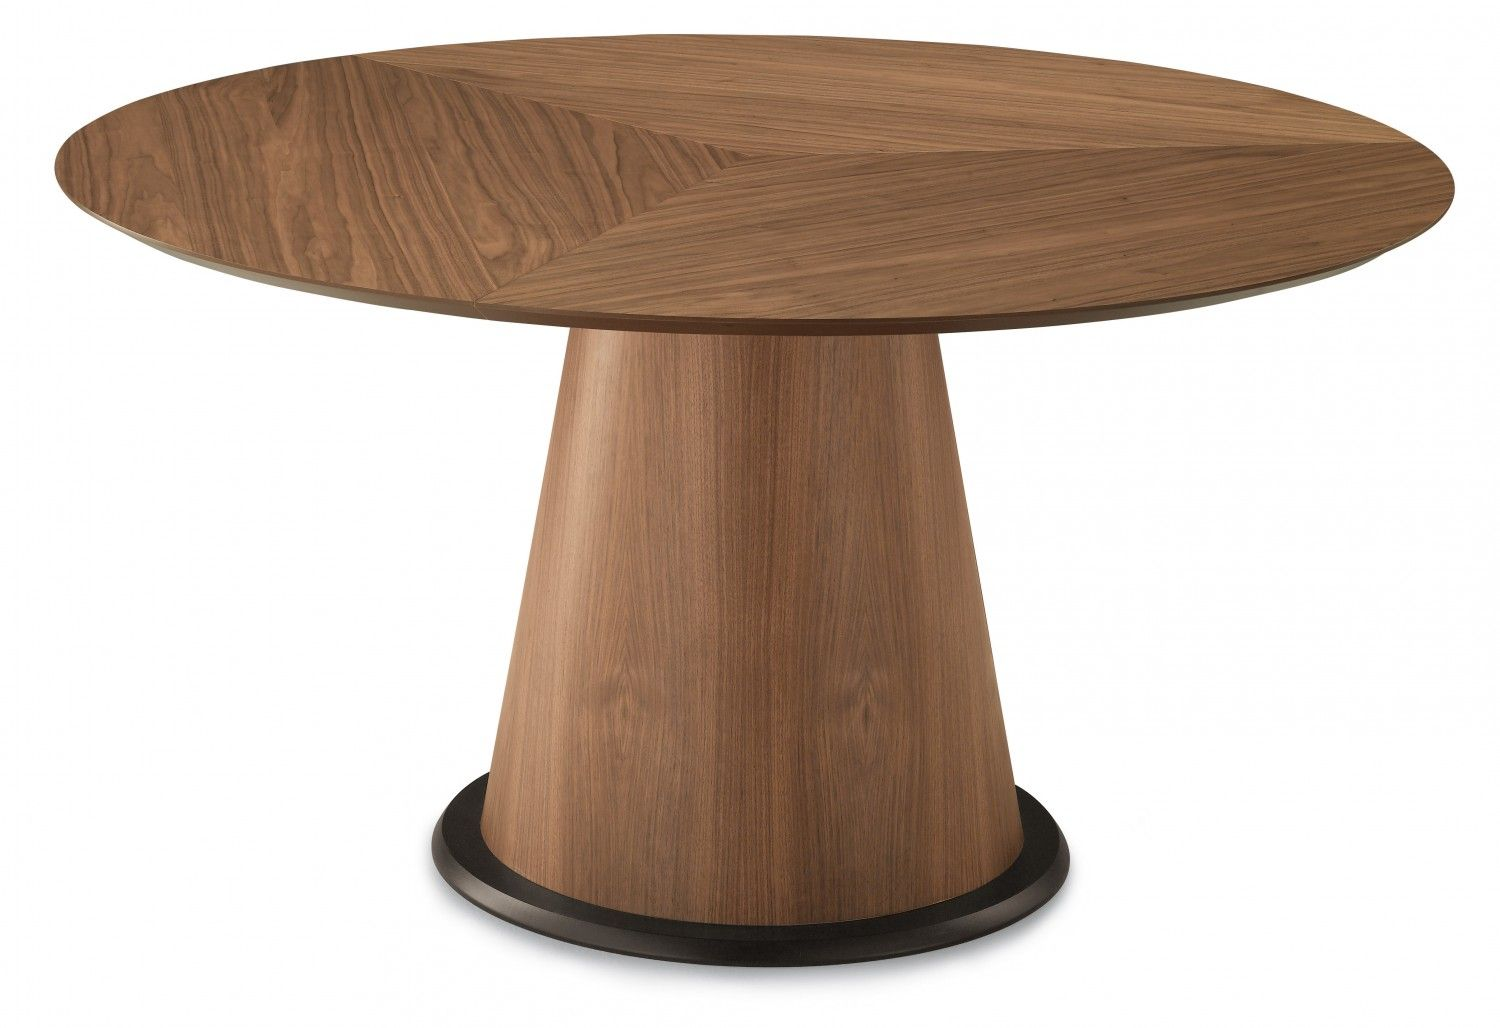 Domitalia Palio 152 Round Table In Walnut Dining Table Dining Table Sale Round Dining Table